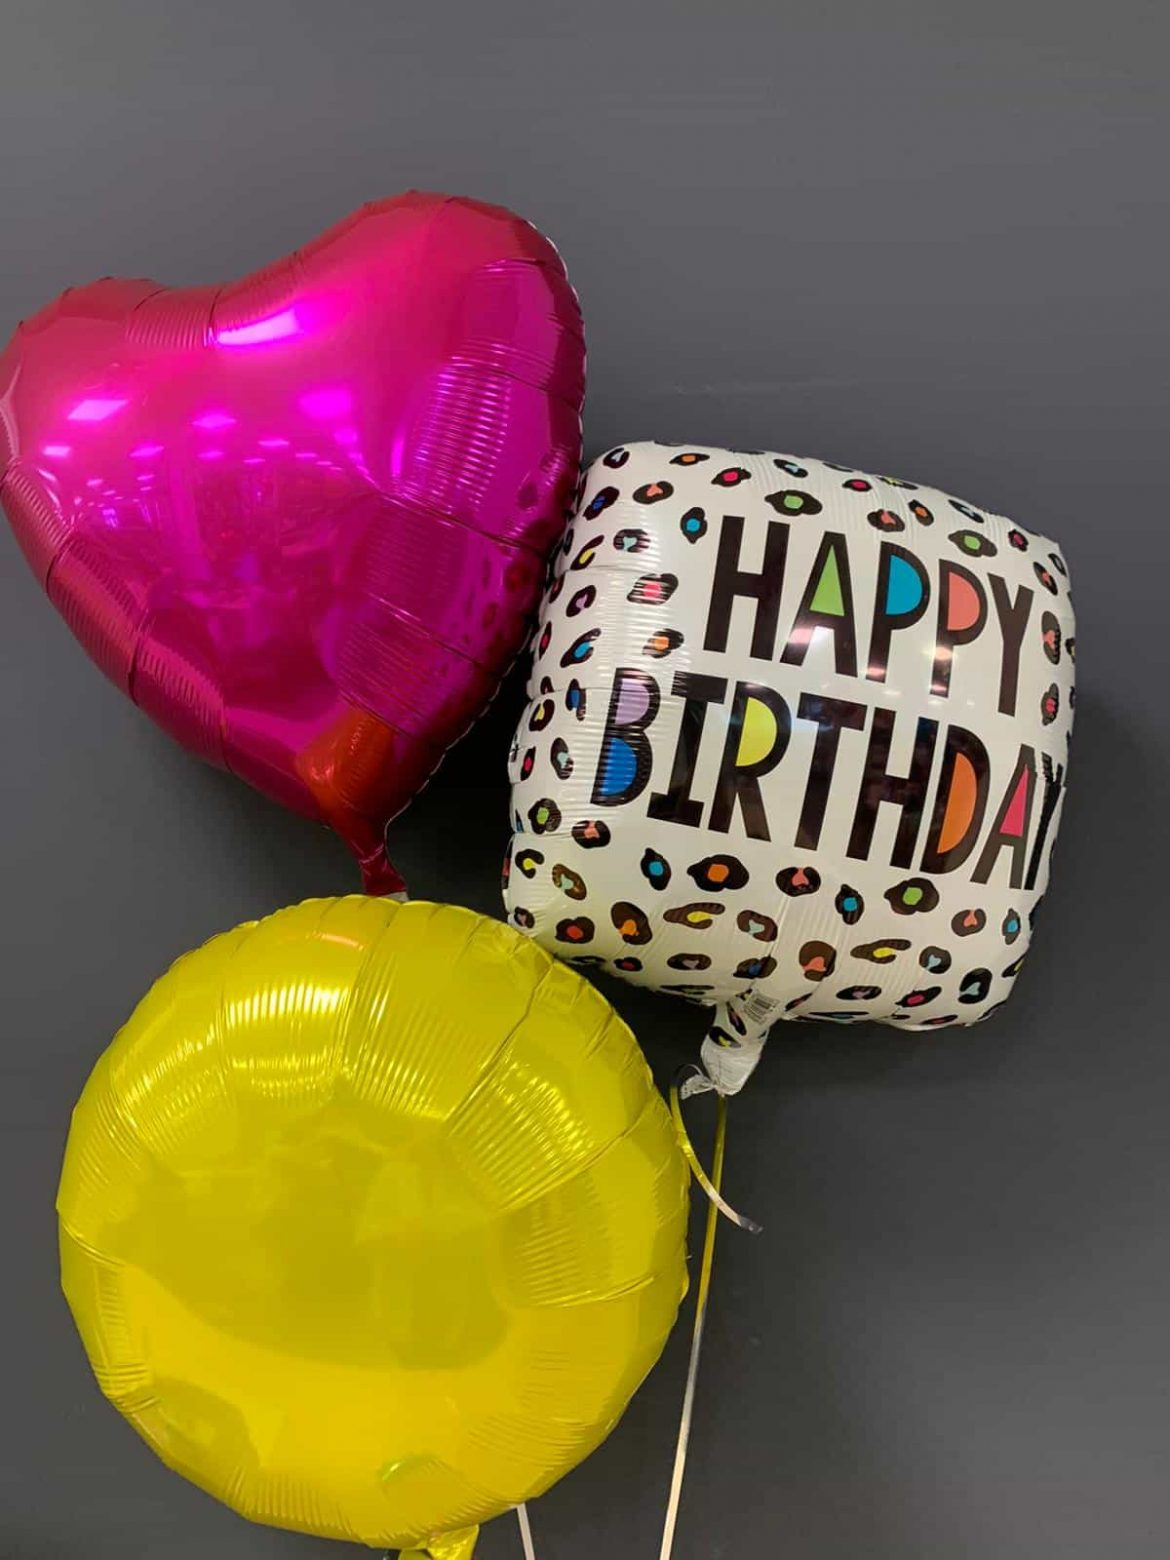 Happy Birthday eckig € 5,50<br />Dekoballons € 4,50 1